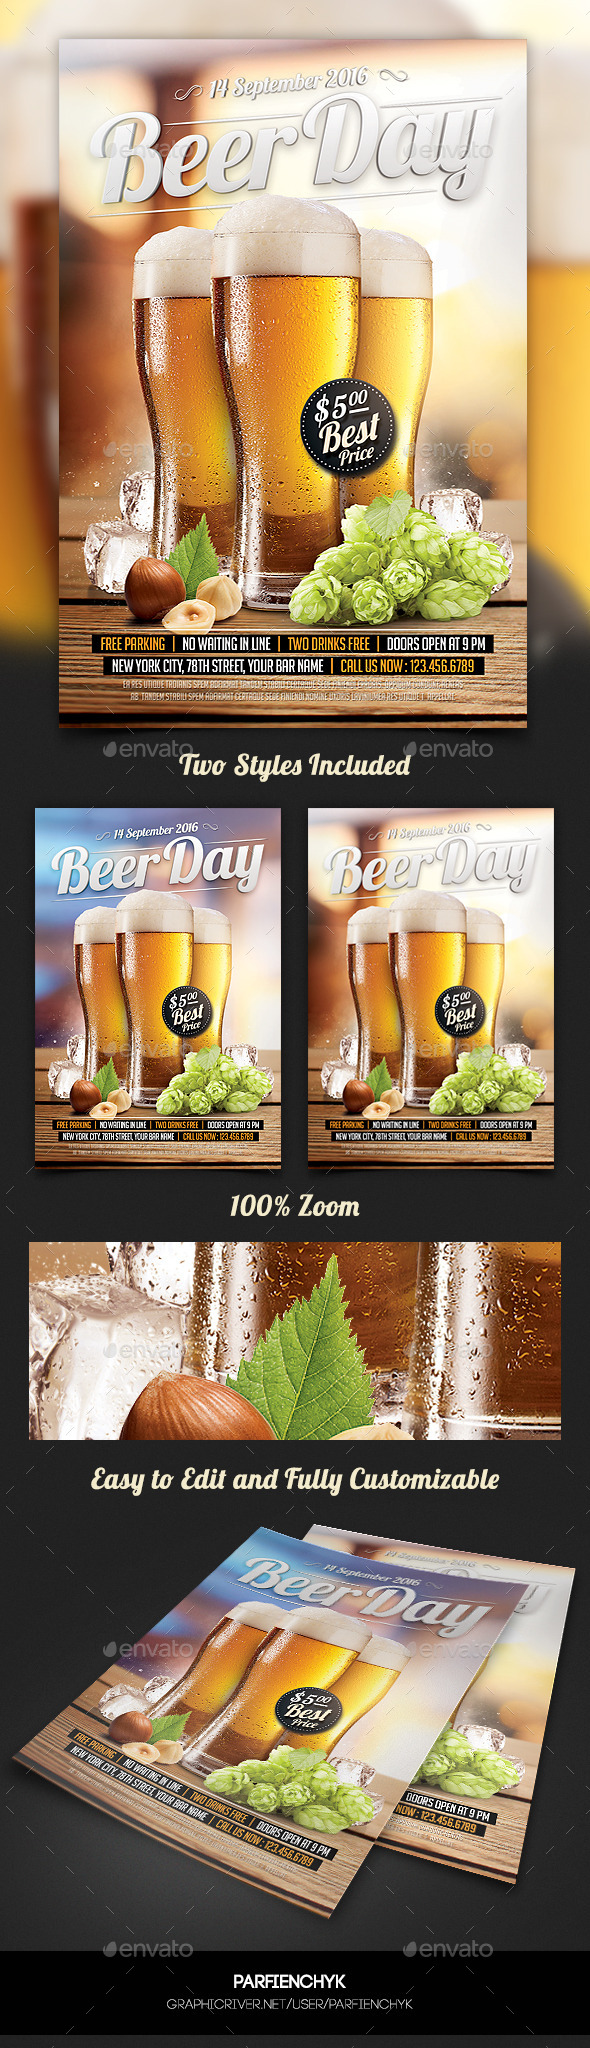 Beer Day Party Flyer Template - Clubs & Parties Events